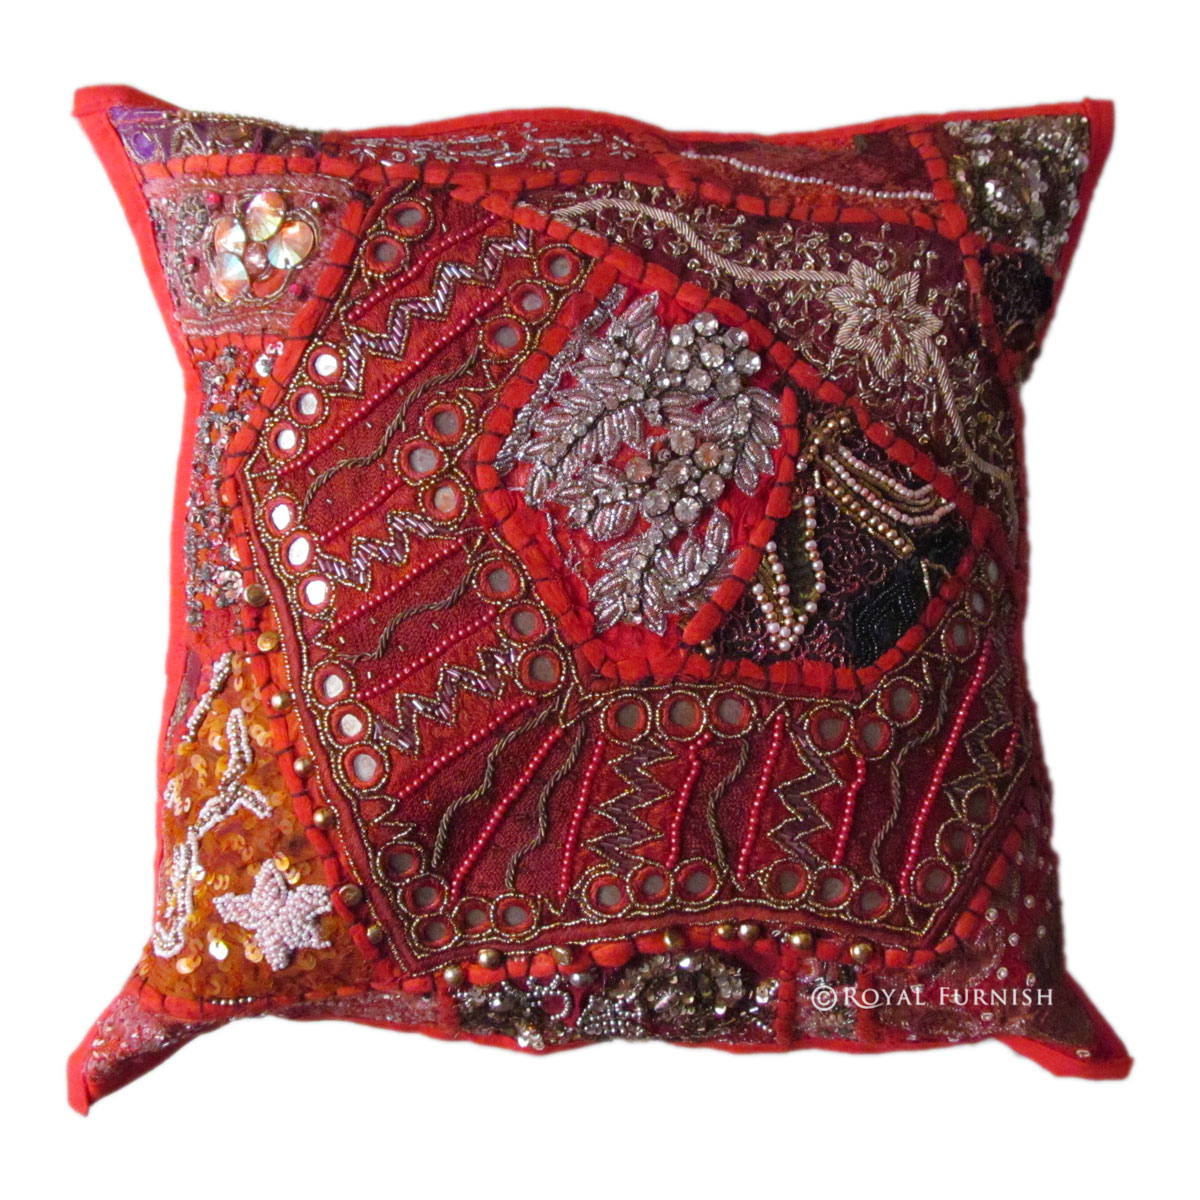 Vintage Antique Red Beaded & Embroidered Accent Throw Pillow Cover Sham - RoyalFurnish.com